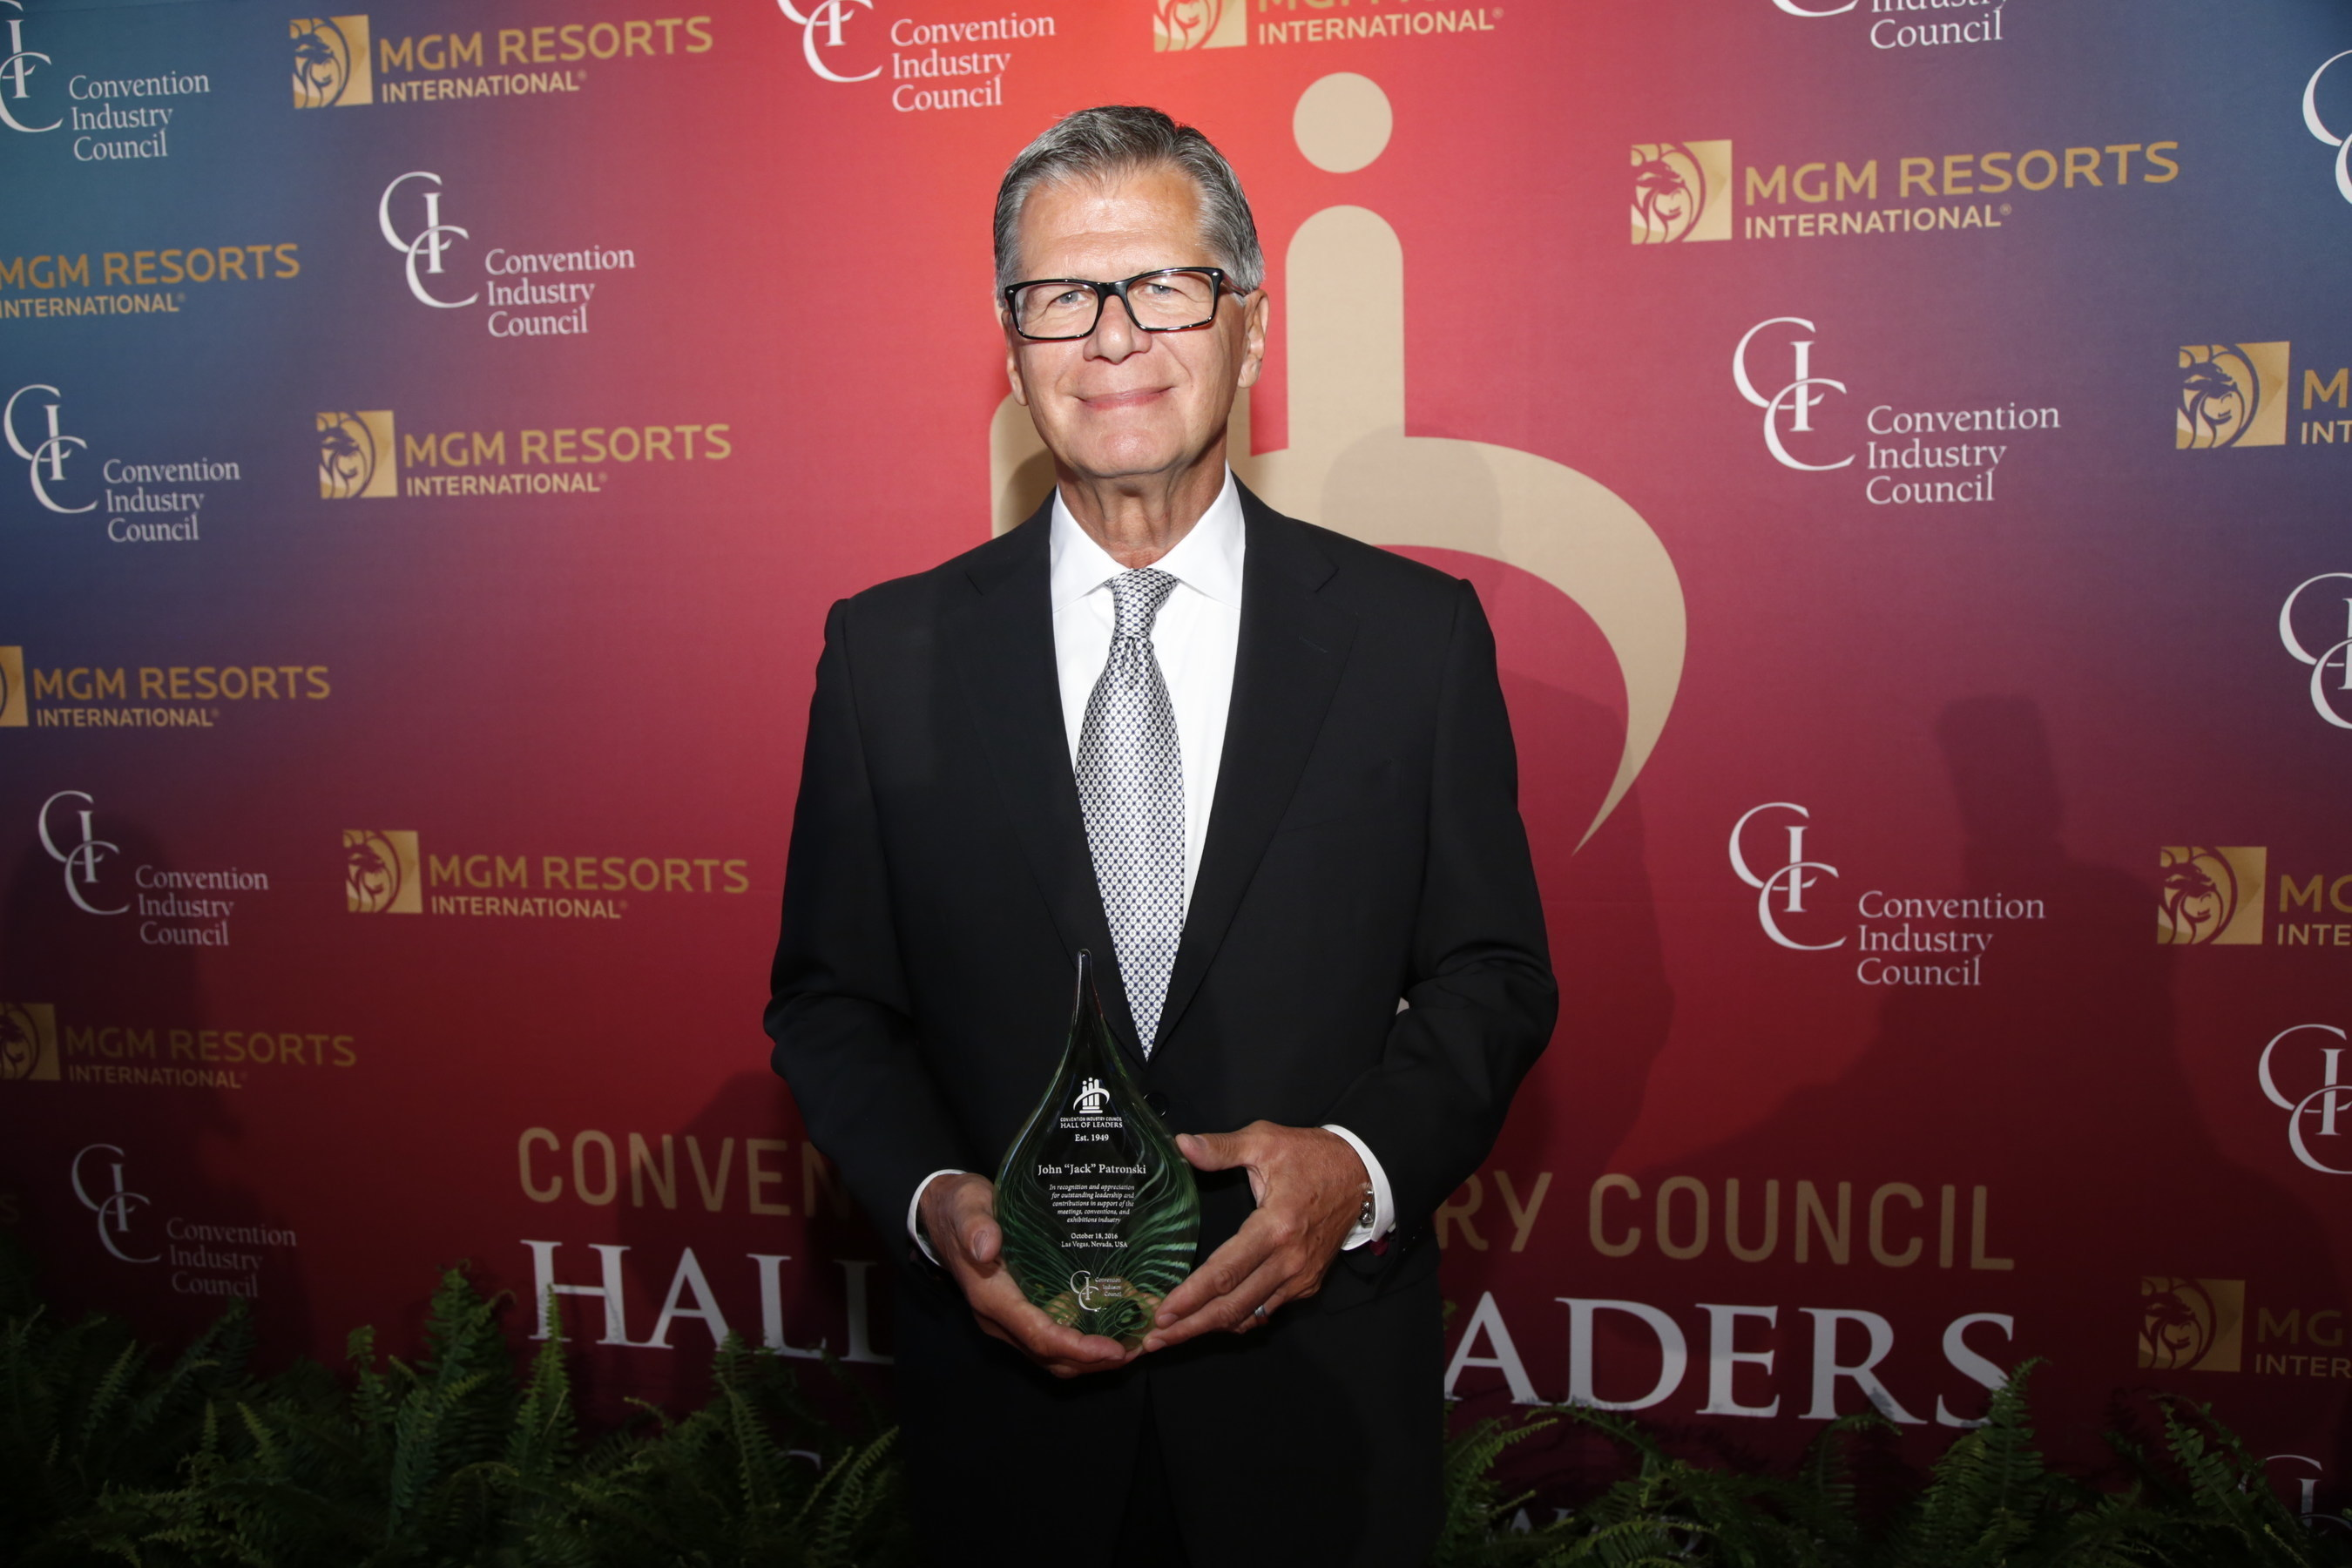 John 'Jack' Patronski of GES Inducted into CIC Hall of Leaders